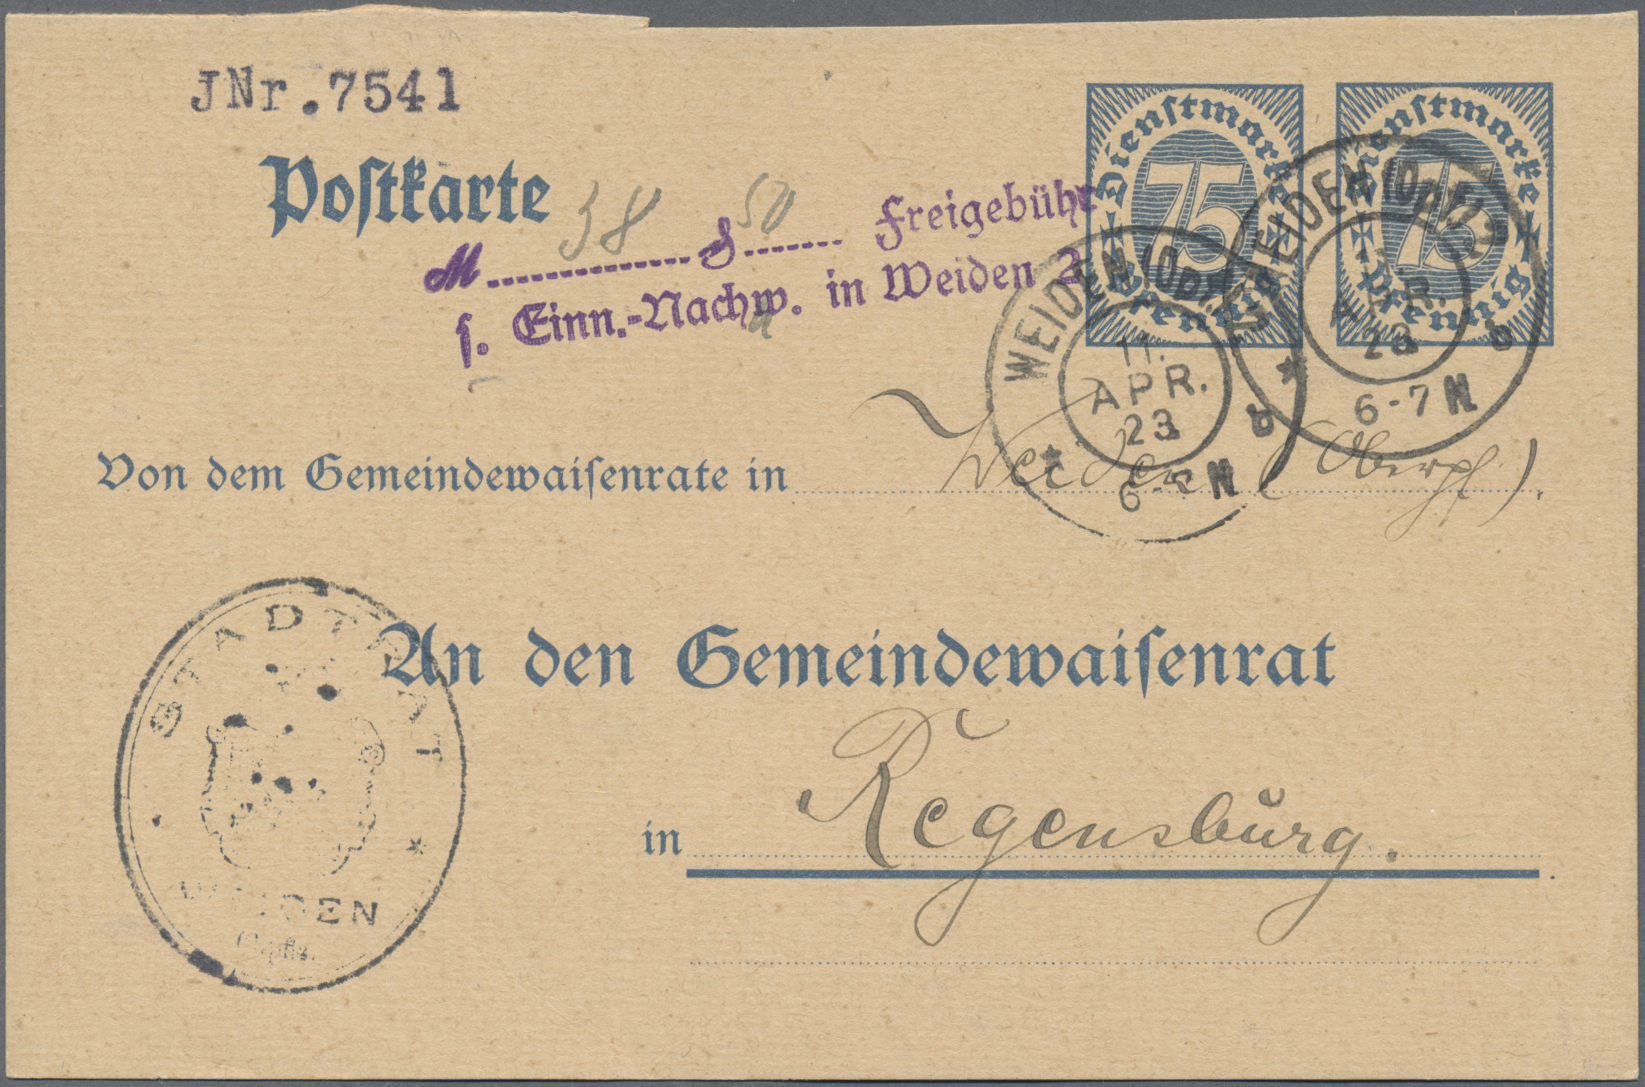 Lot 15124 - Deutsches Reich - Ganzsachen  -  Auktionshaus Christoph Gärtner GmbH & Co. KG Sale #46 Single lots Germany - and picture post cards